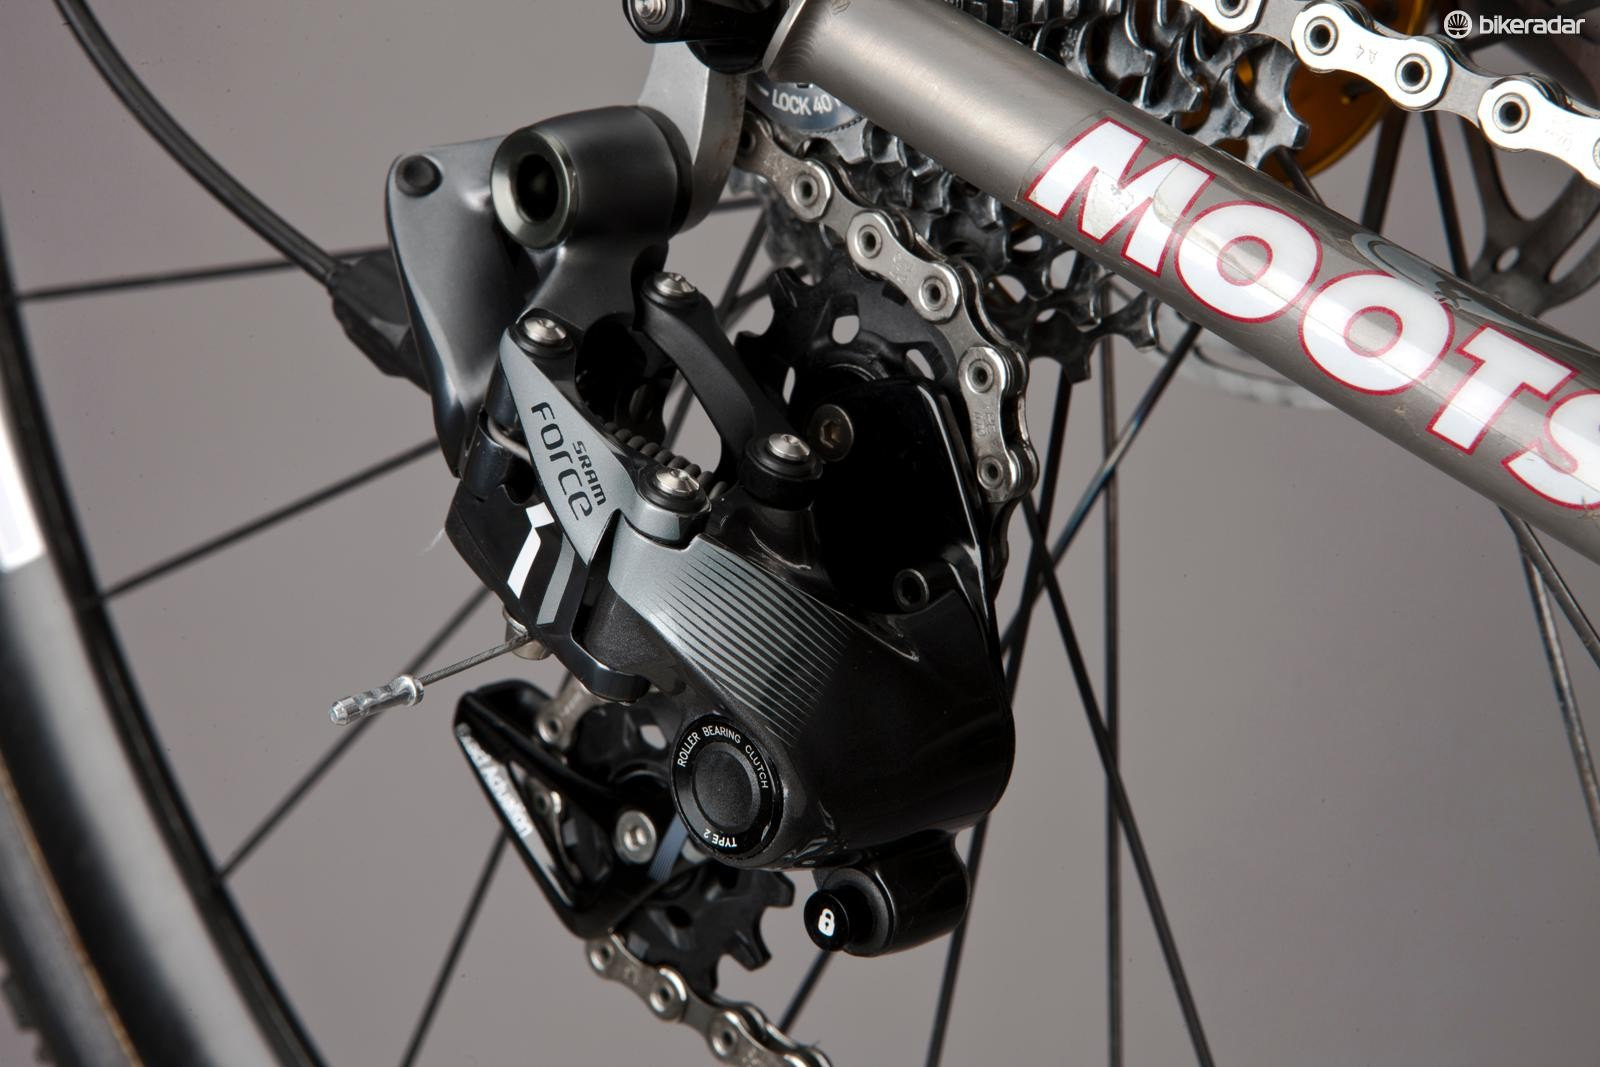 X-Sync pulleys and roller-bearing clutch make the rear derailleur the critical component of the CX1 group